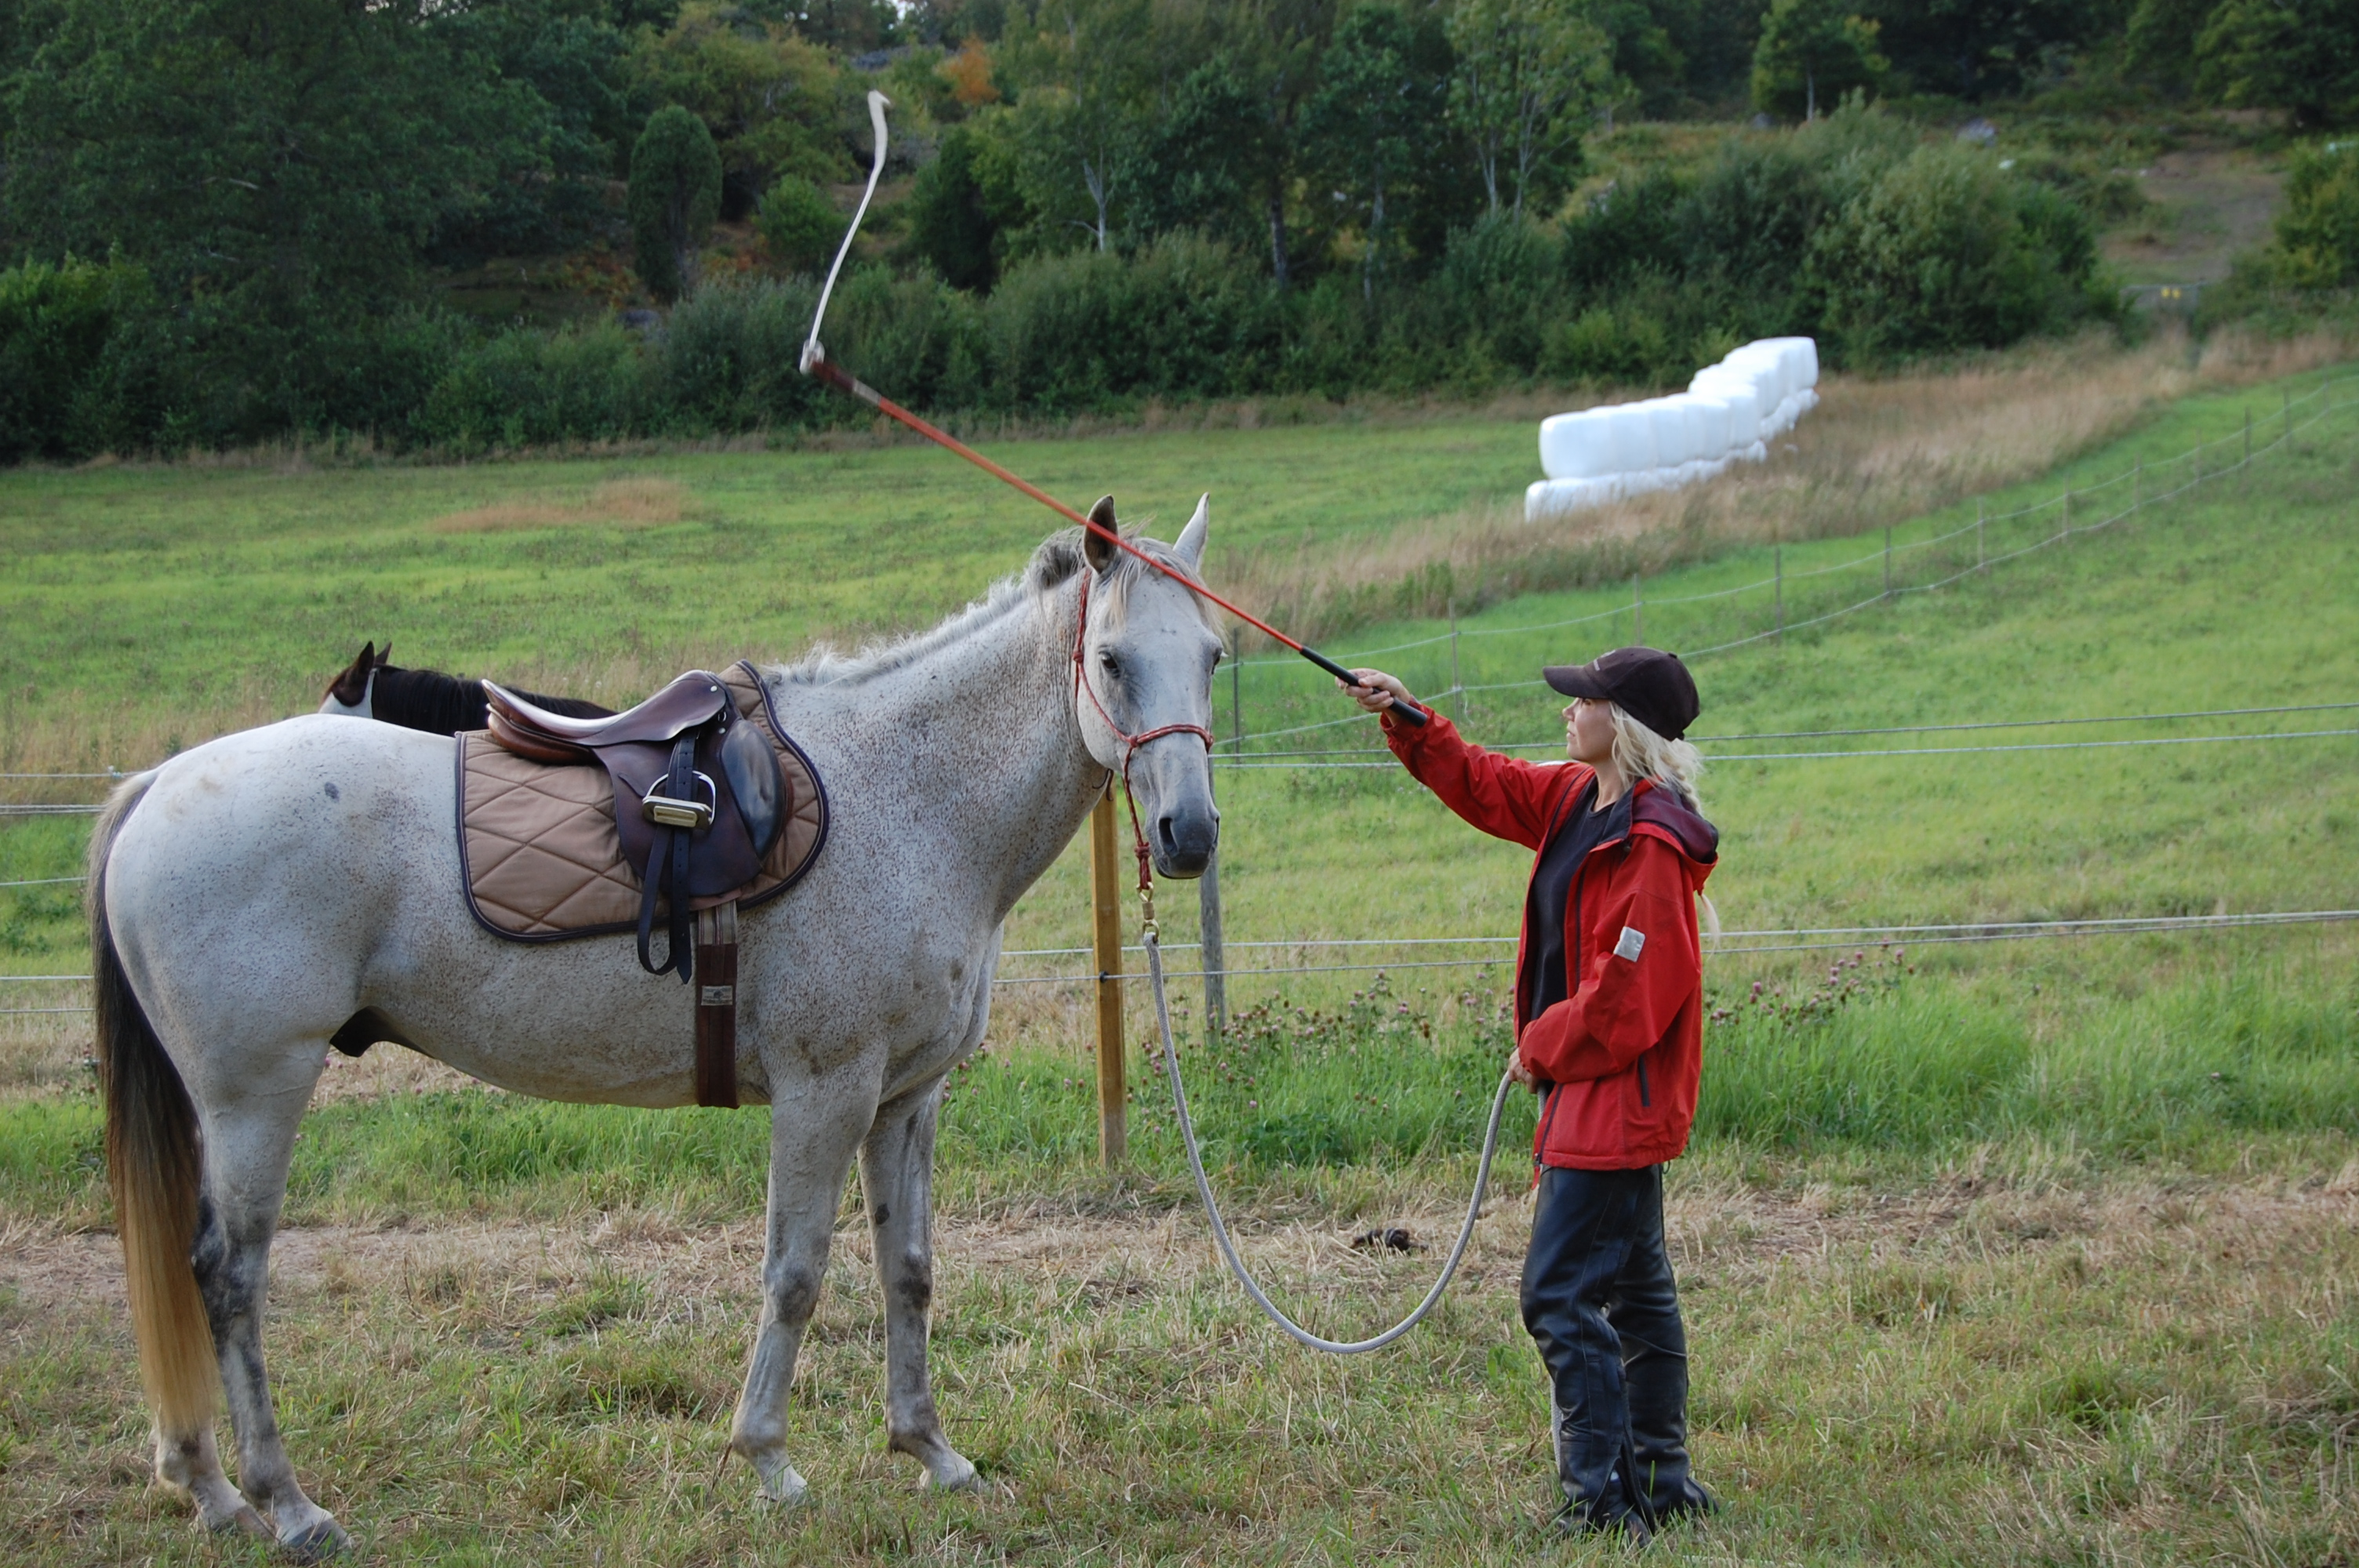 Friendly game-Parelli Natural horsemanship